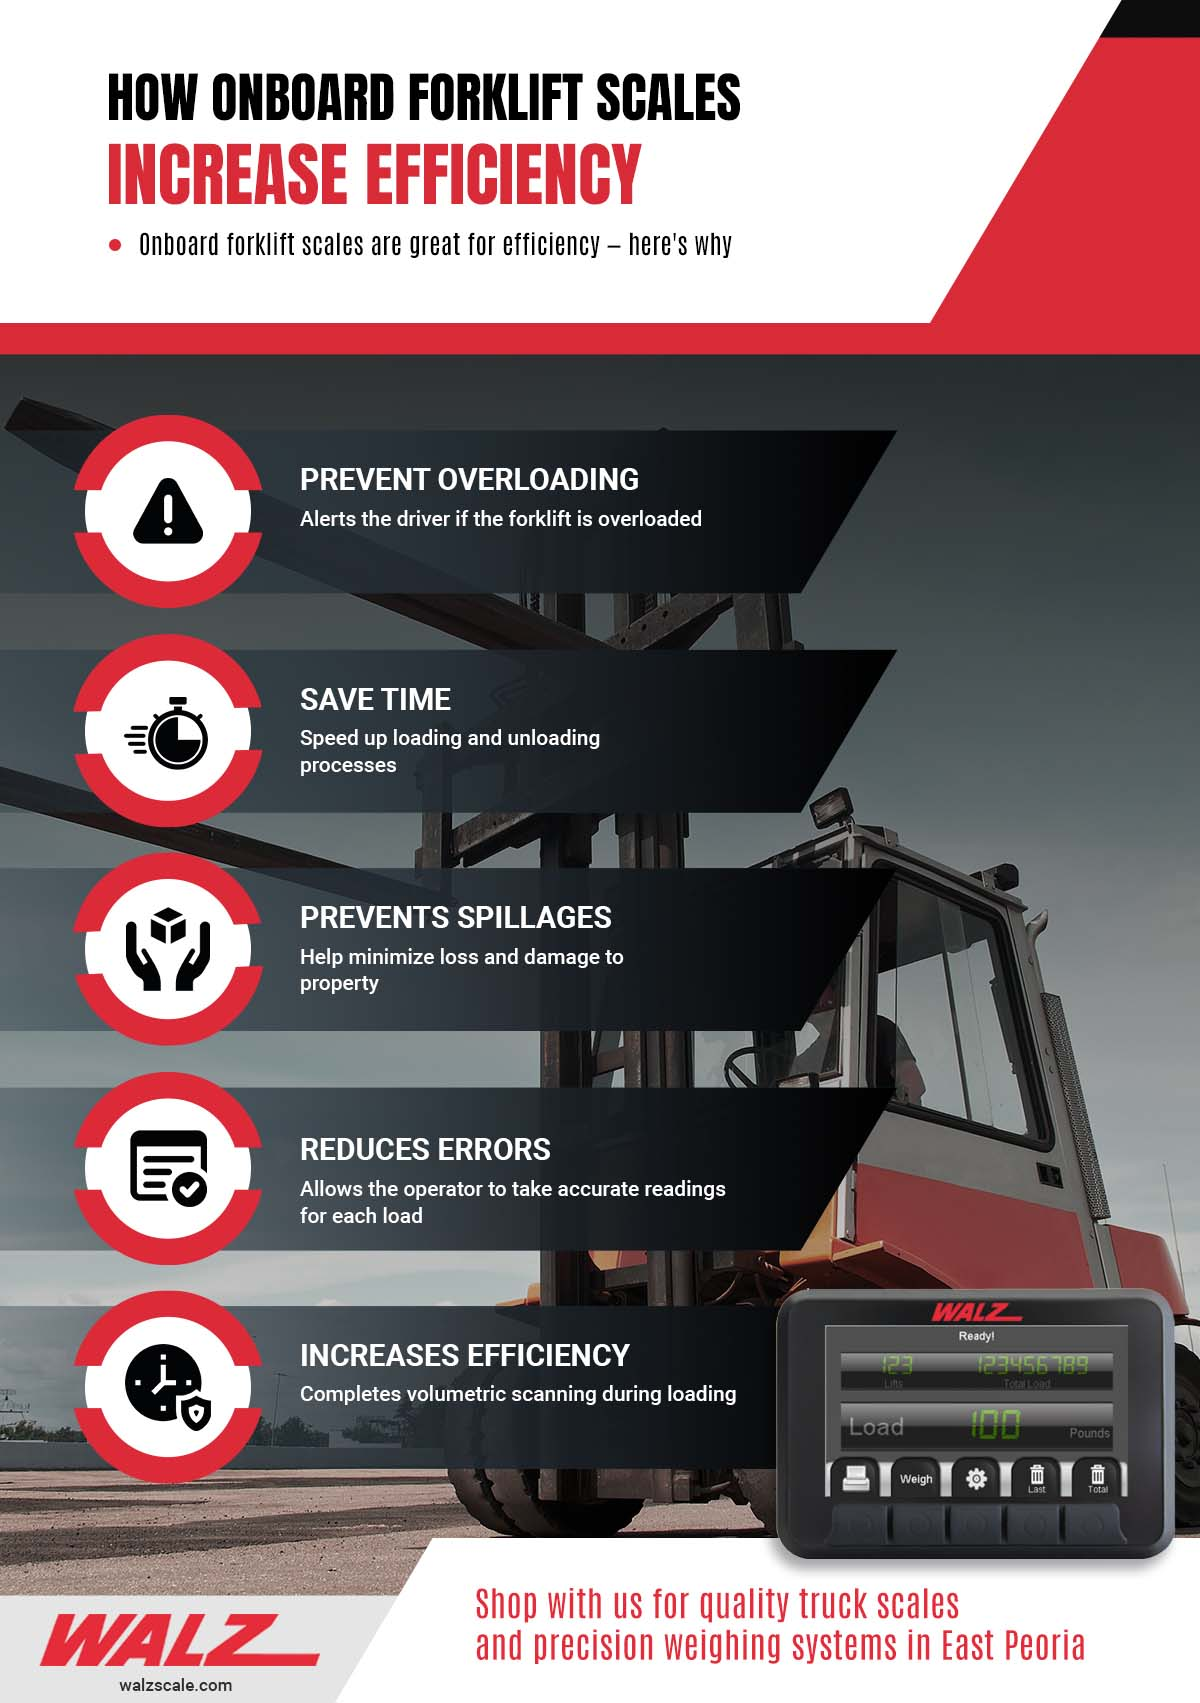 How Onboard Forklift Scales Increase Efficiency Infographic